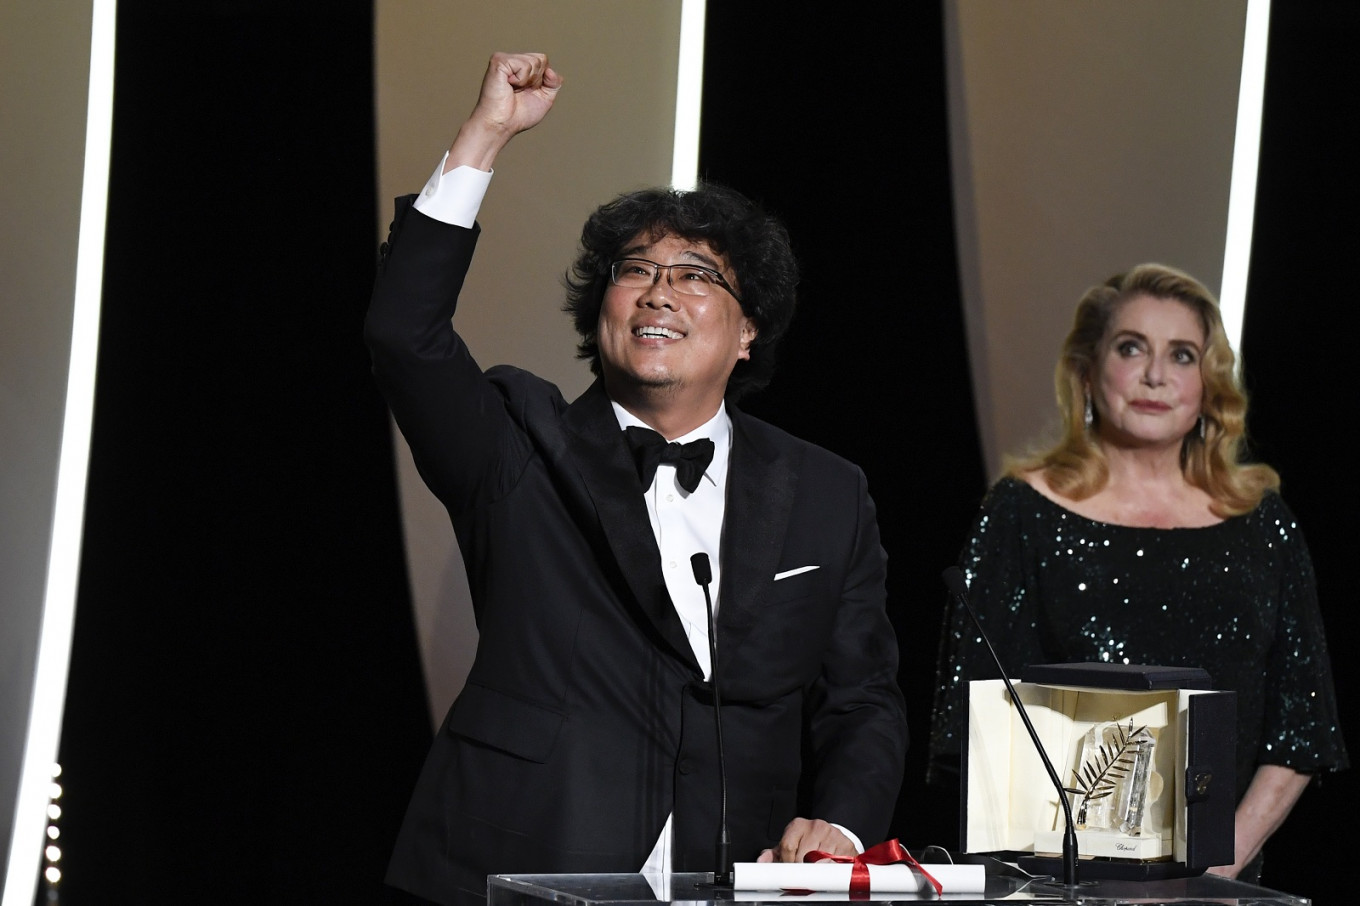 An Oscar for Parasite? The global rise of South Korean film